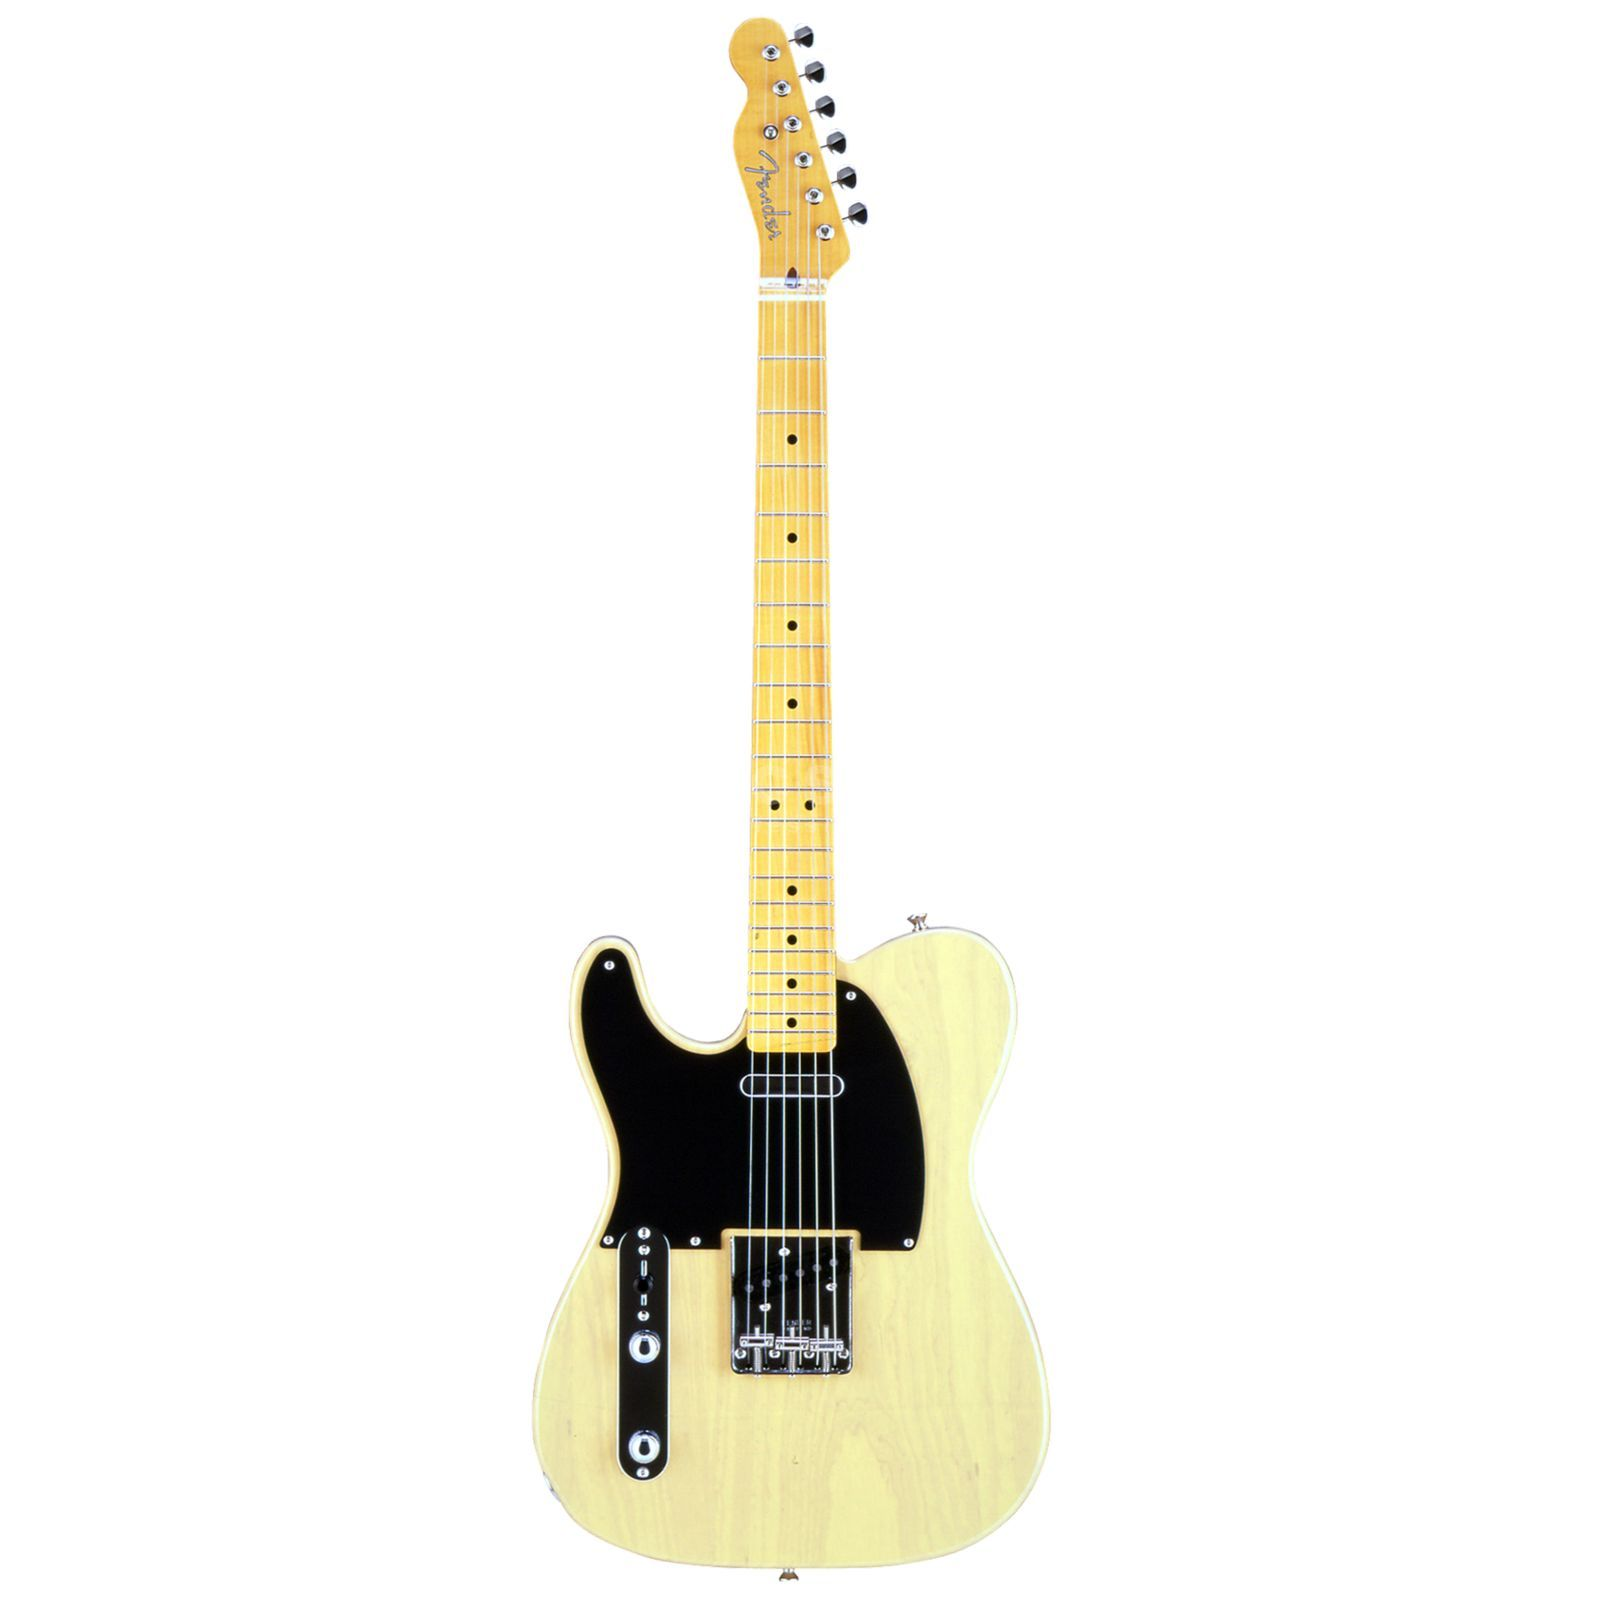 Fender Japan Limited Classic '50s Telecaster MN Lefthand Off-White Blonde Image du produit